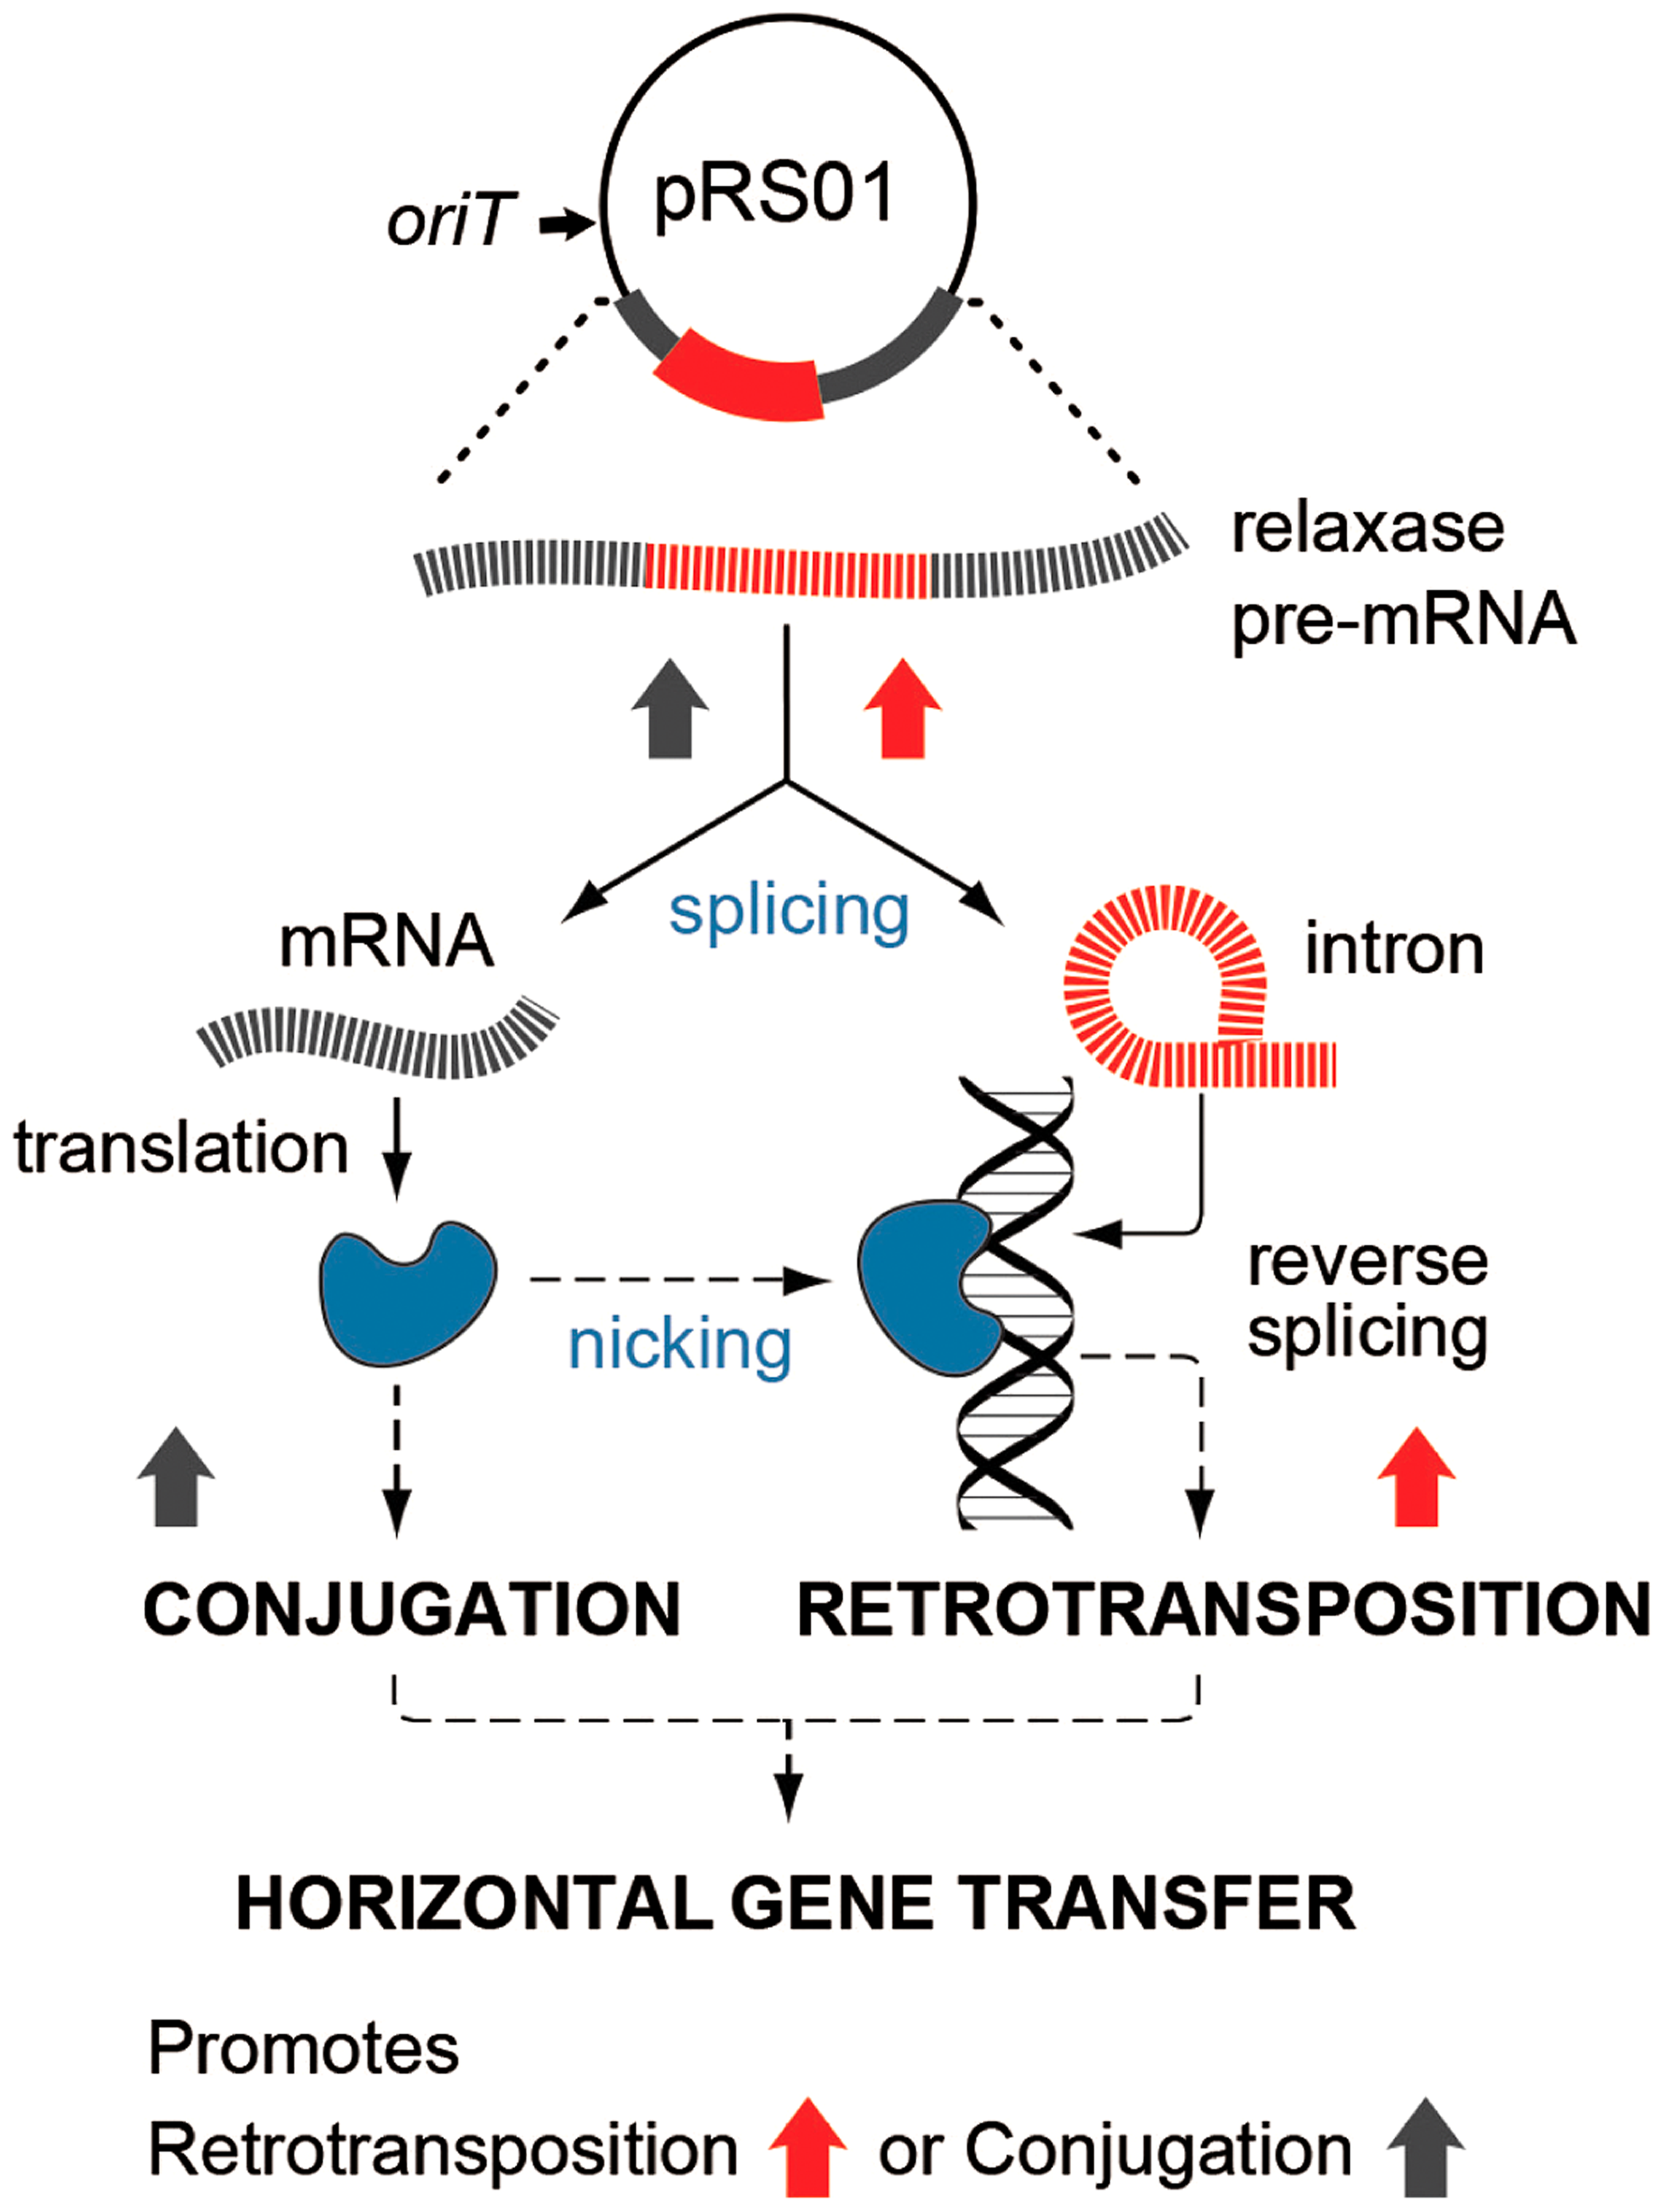 Interaction between pRS01 conjugation and intron retrotransposition.